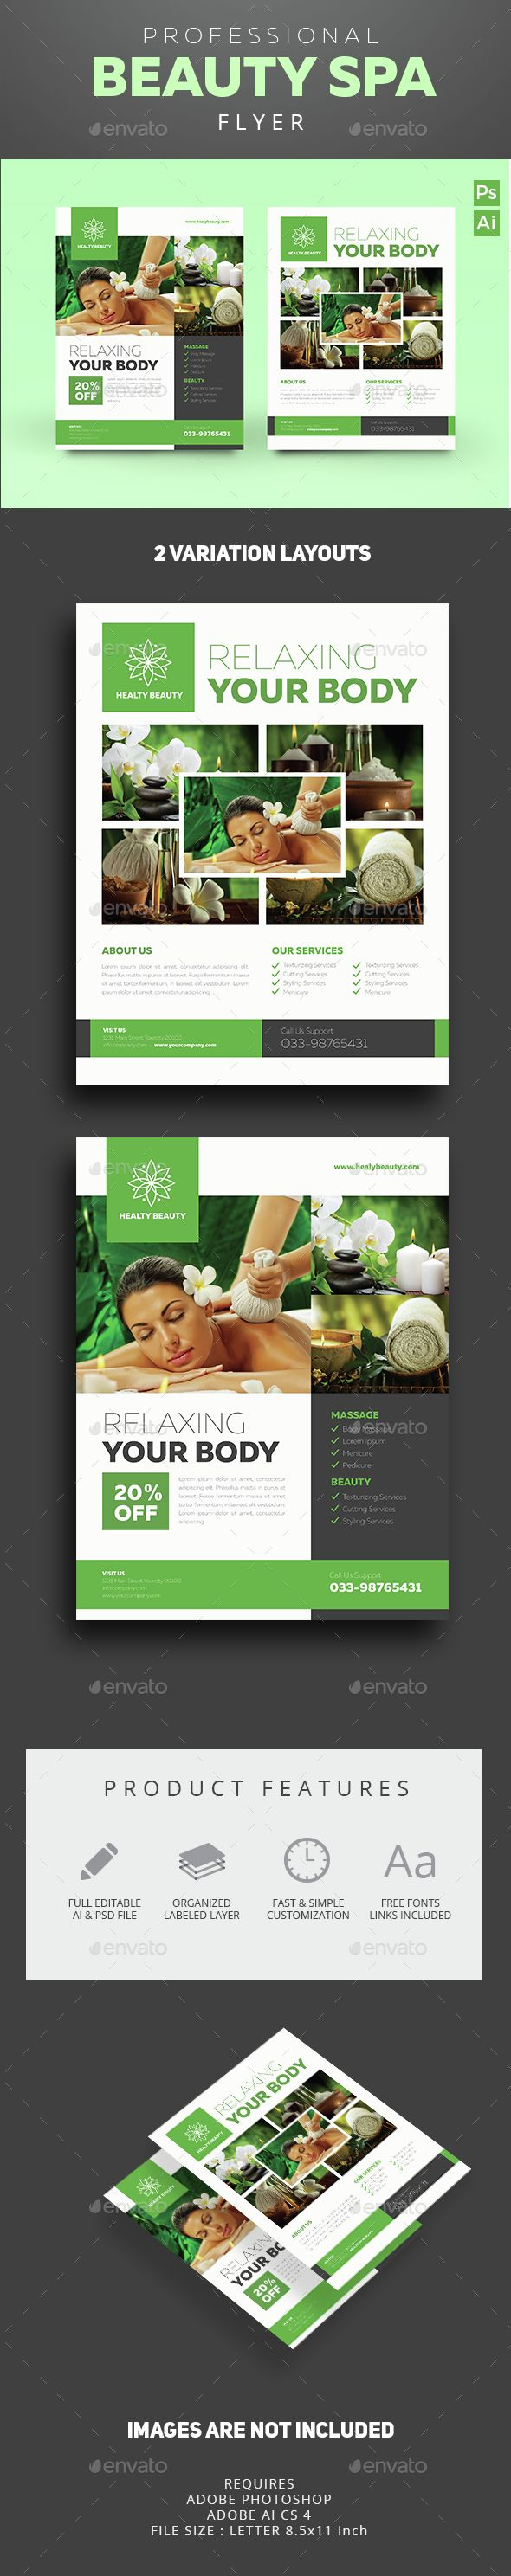 Beauty & Spa Flyer Template PSD, Vector AI. Download here: http://graphicriver.net/item/beauty-spa-flyer/14635119?ref=ksioks